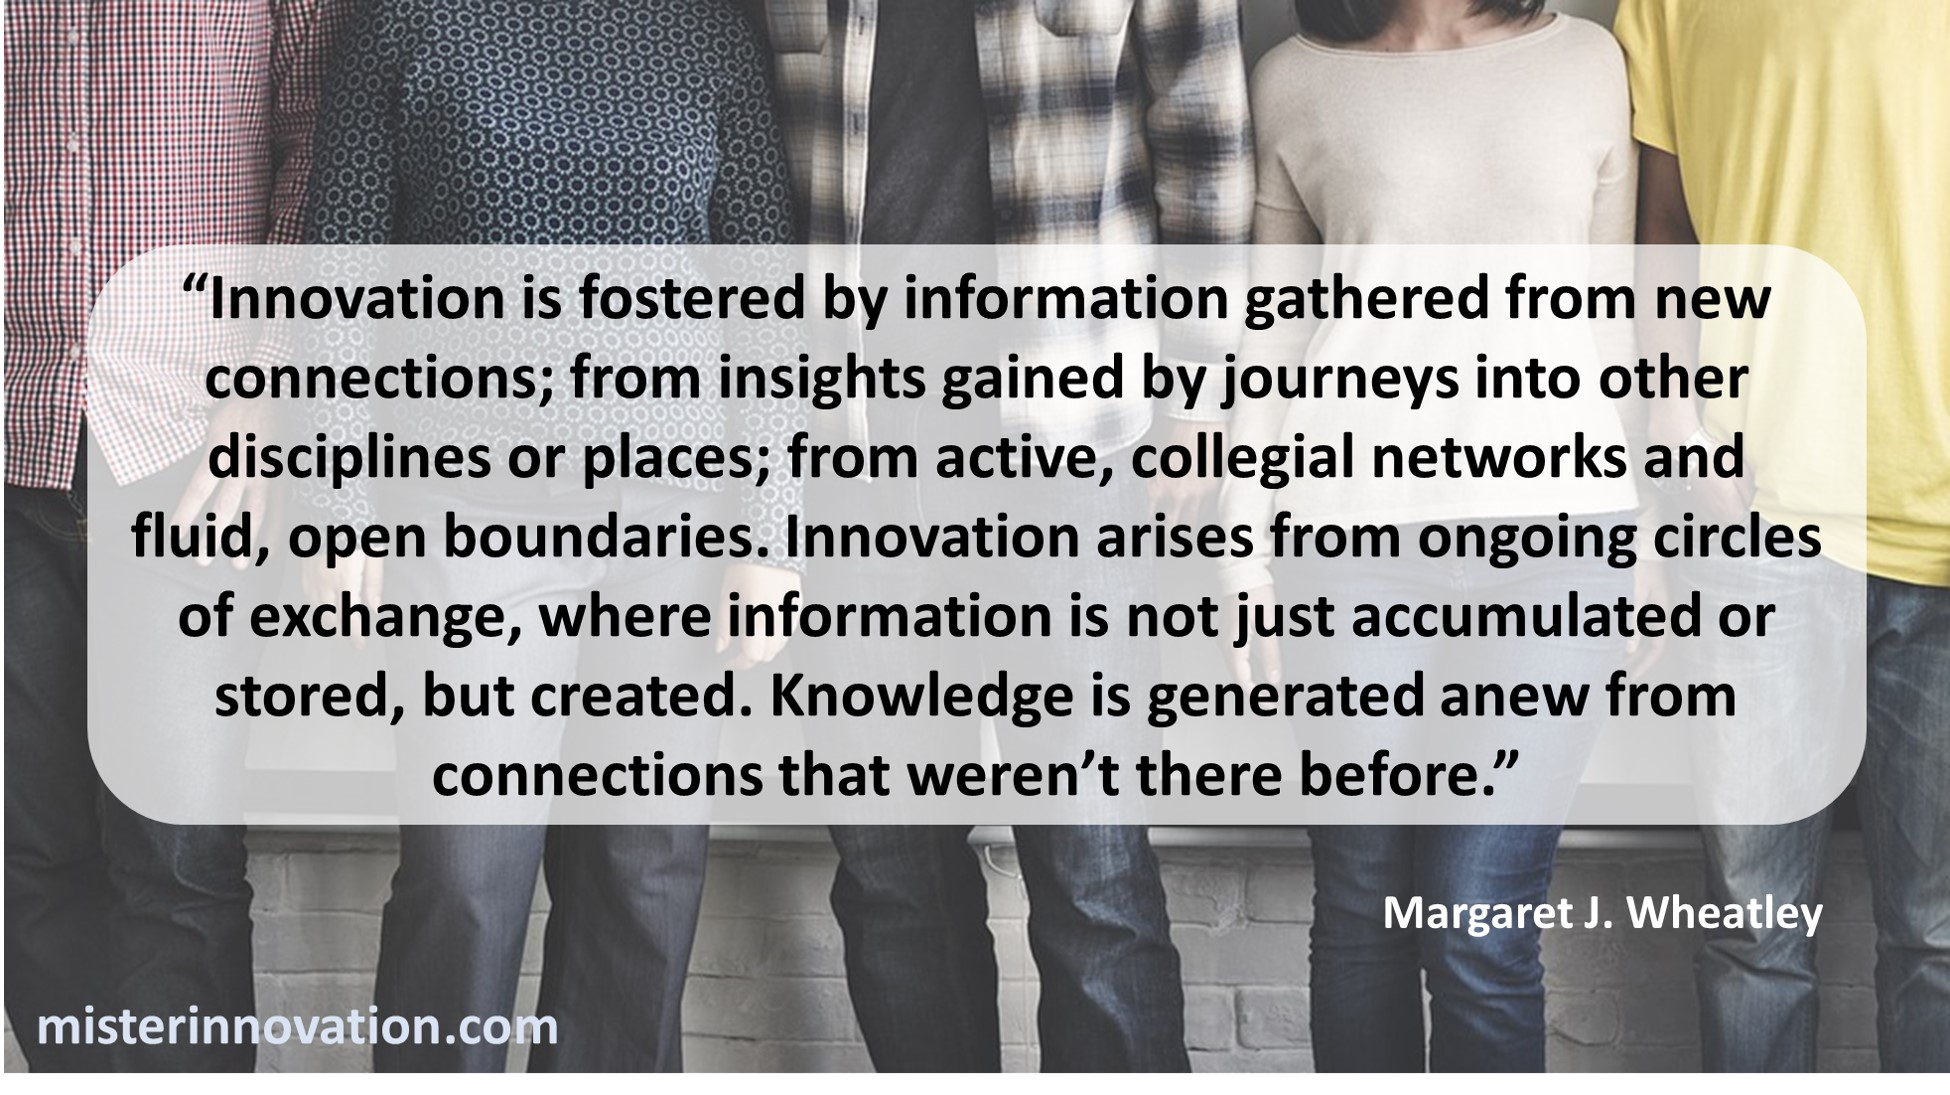 Margaret J Wheatley Quote on Connections and Innovation